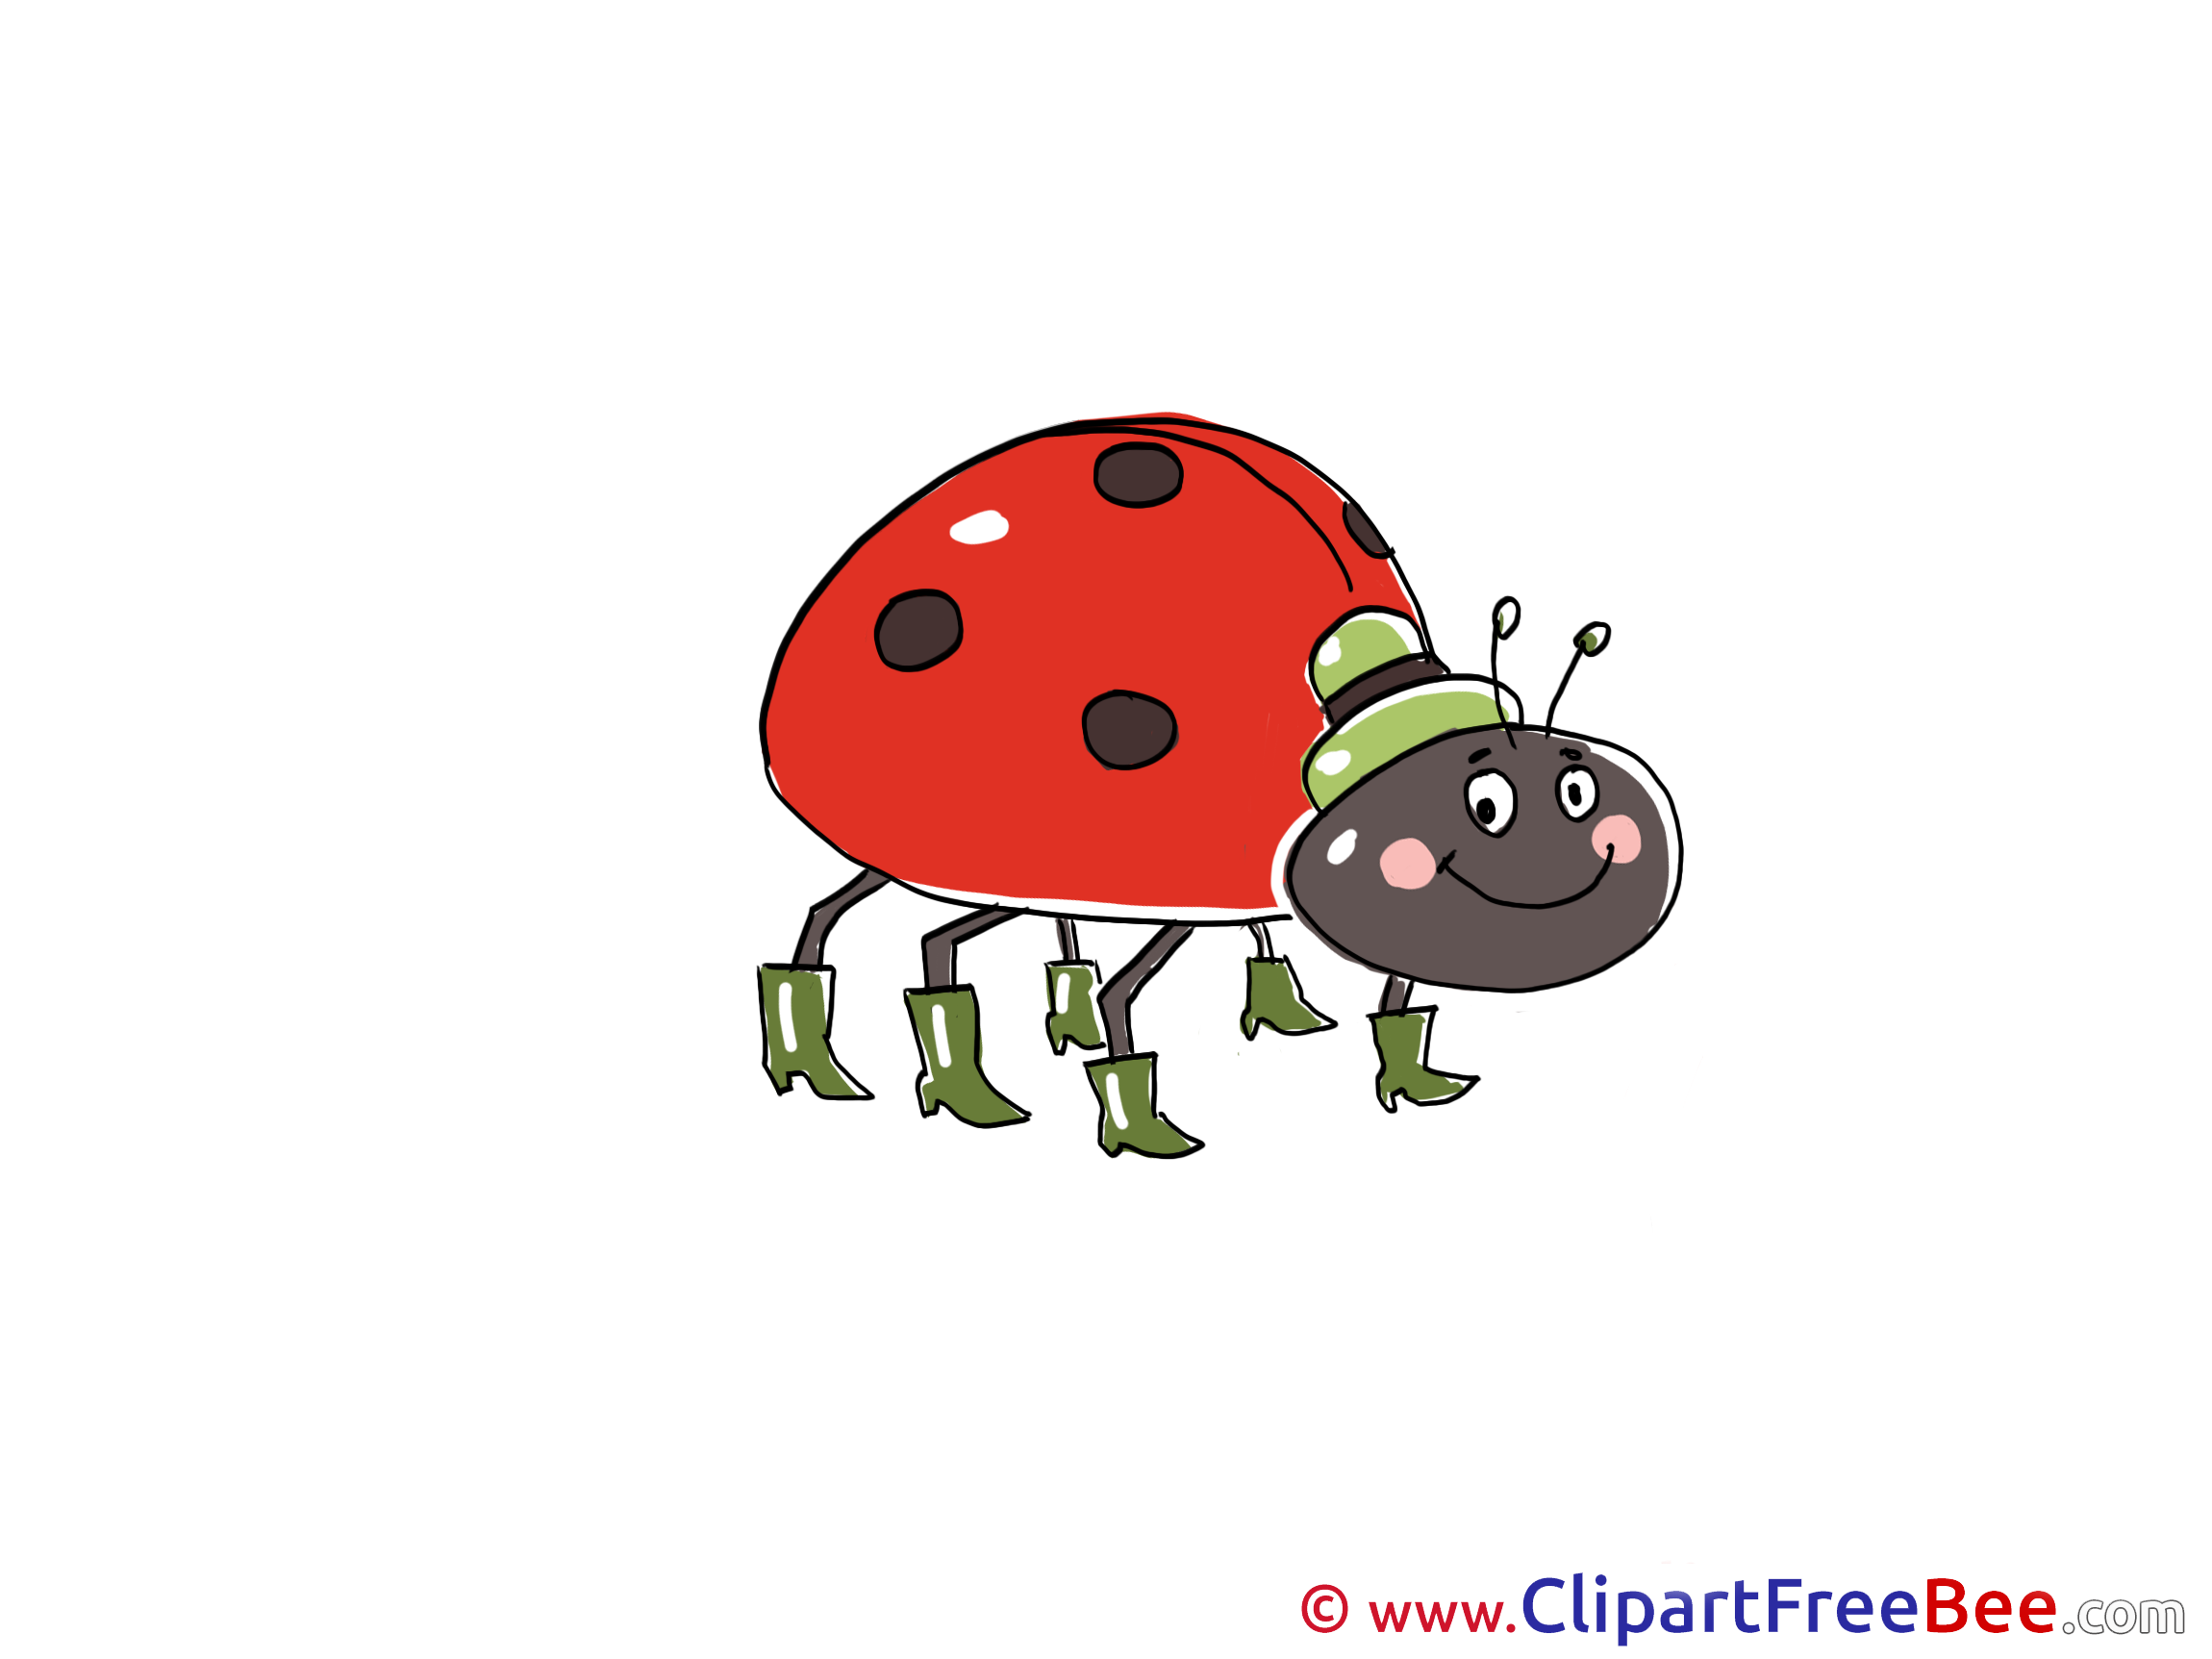 Ladybug free Cliparts for download